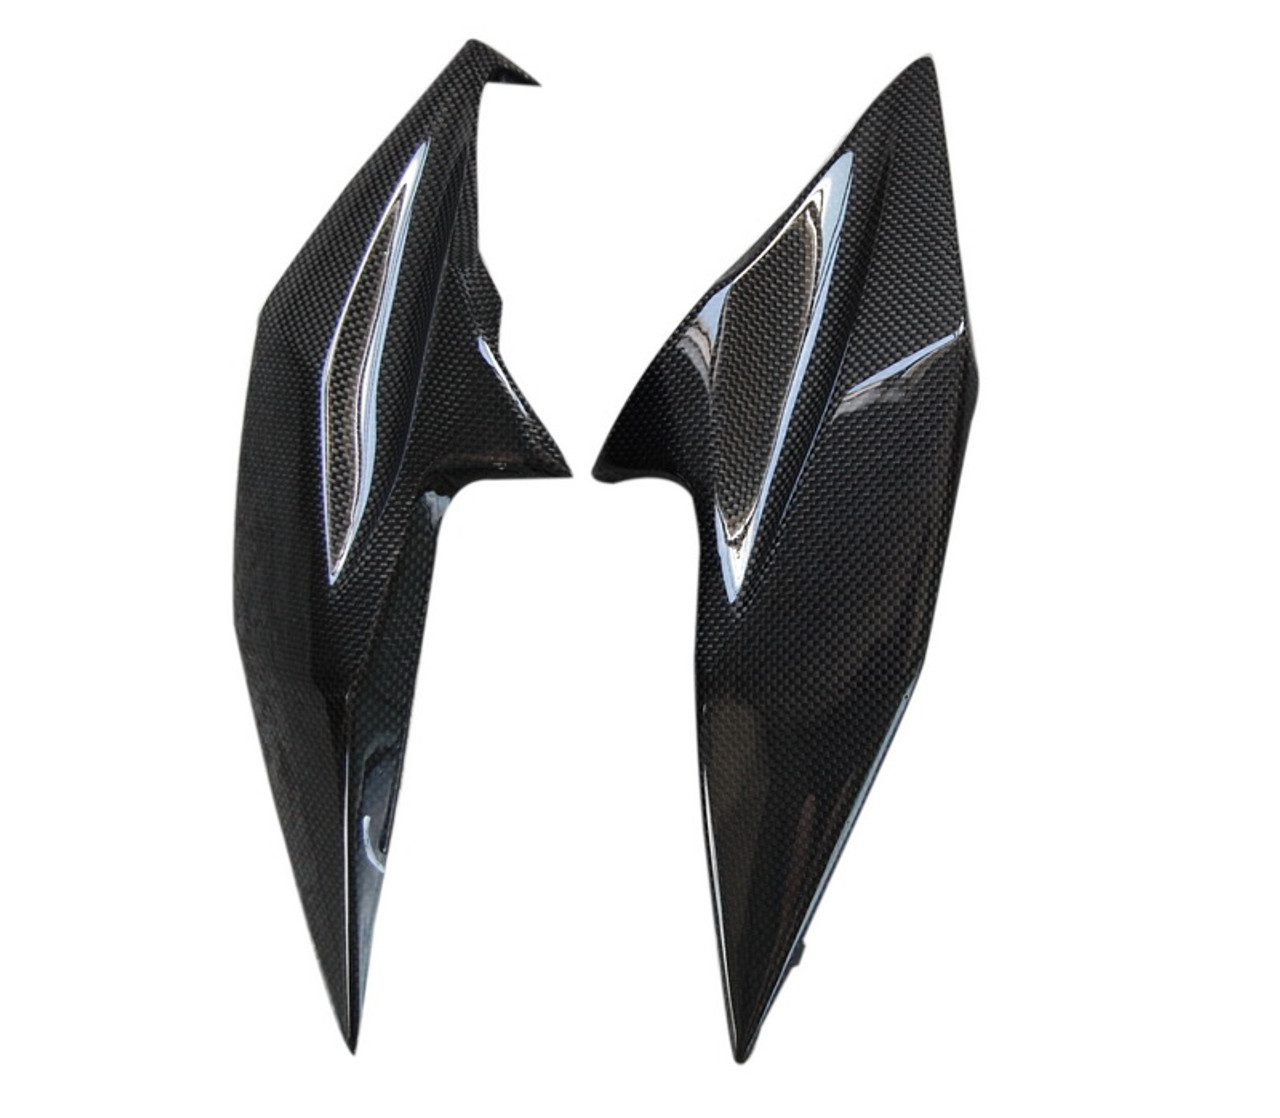 Front Fairing Middle Panels in Glossy Plain Weave Carbon Fiber for Kawasaki Z800